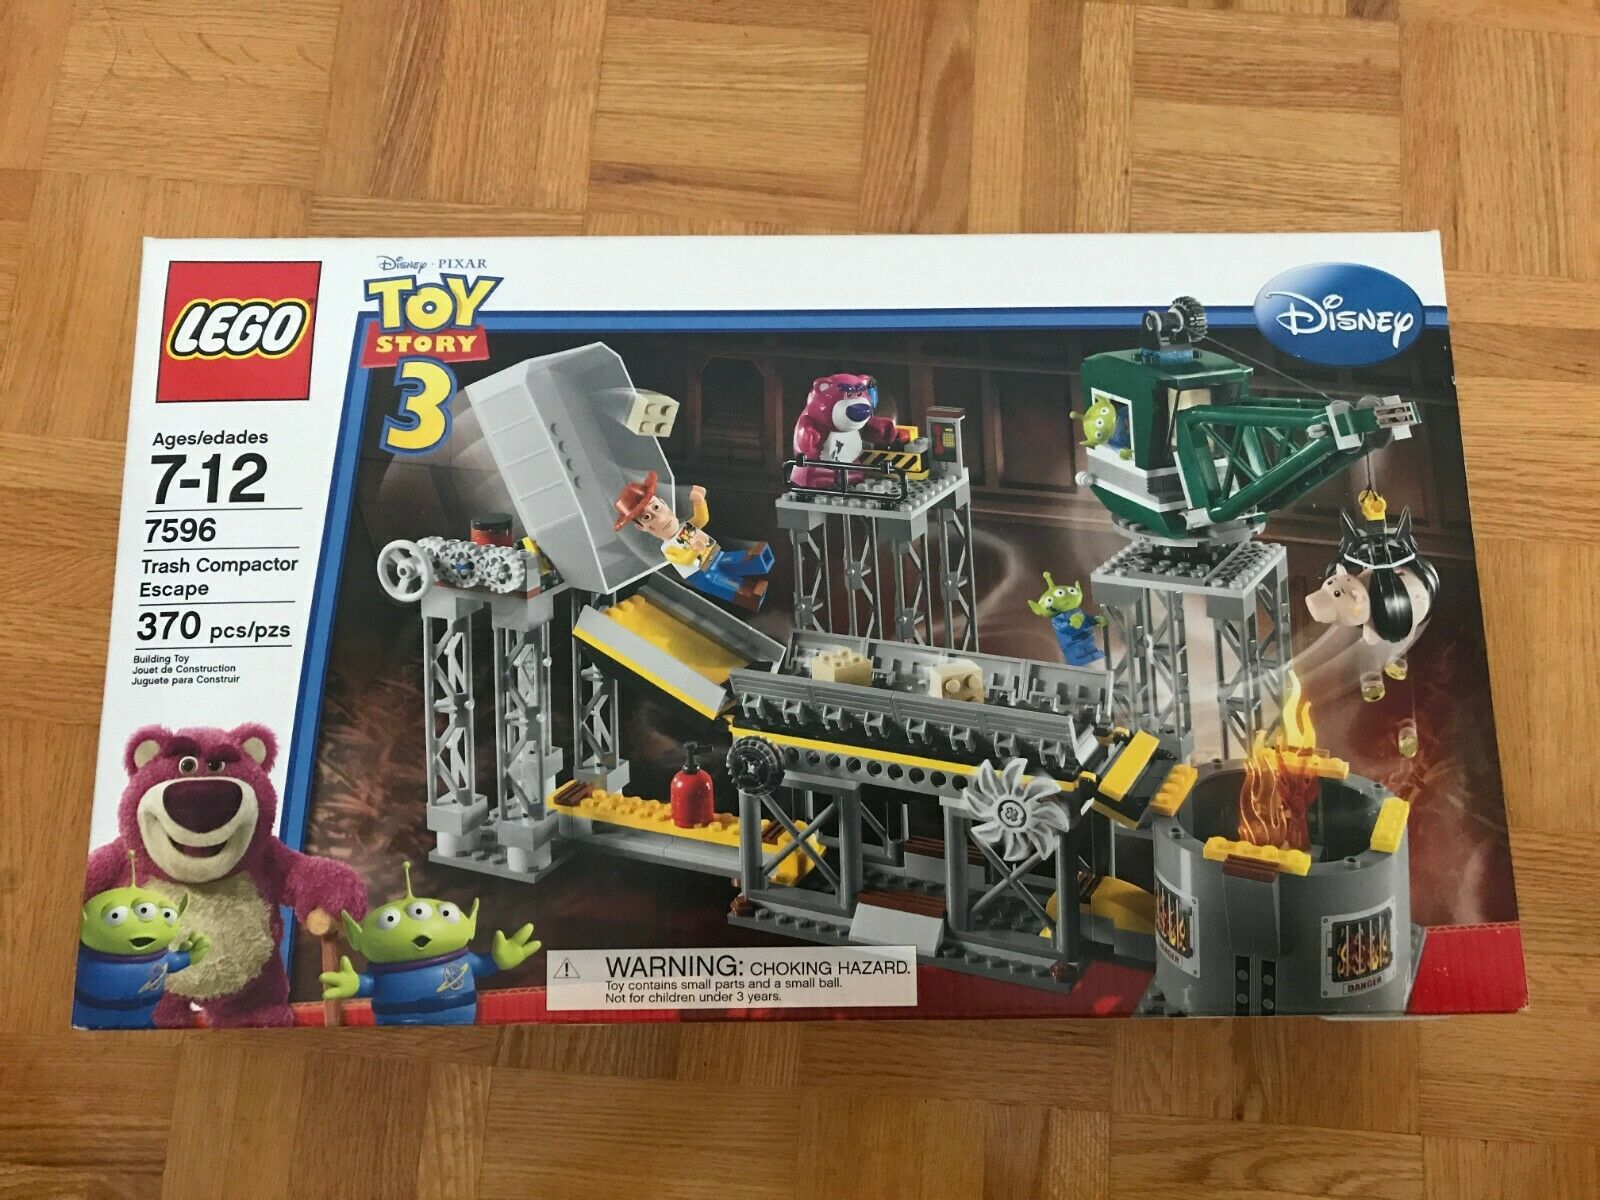 BRAND NEW SEALED Toy Story 3 Lego Set 7596 Trash Compactor Escape